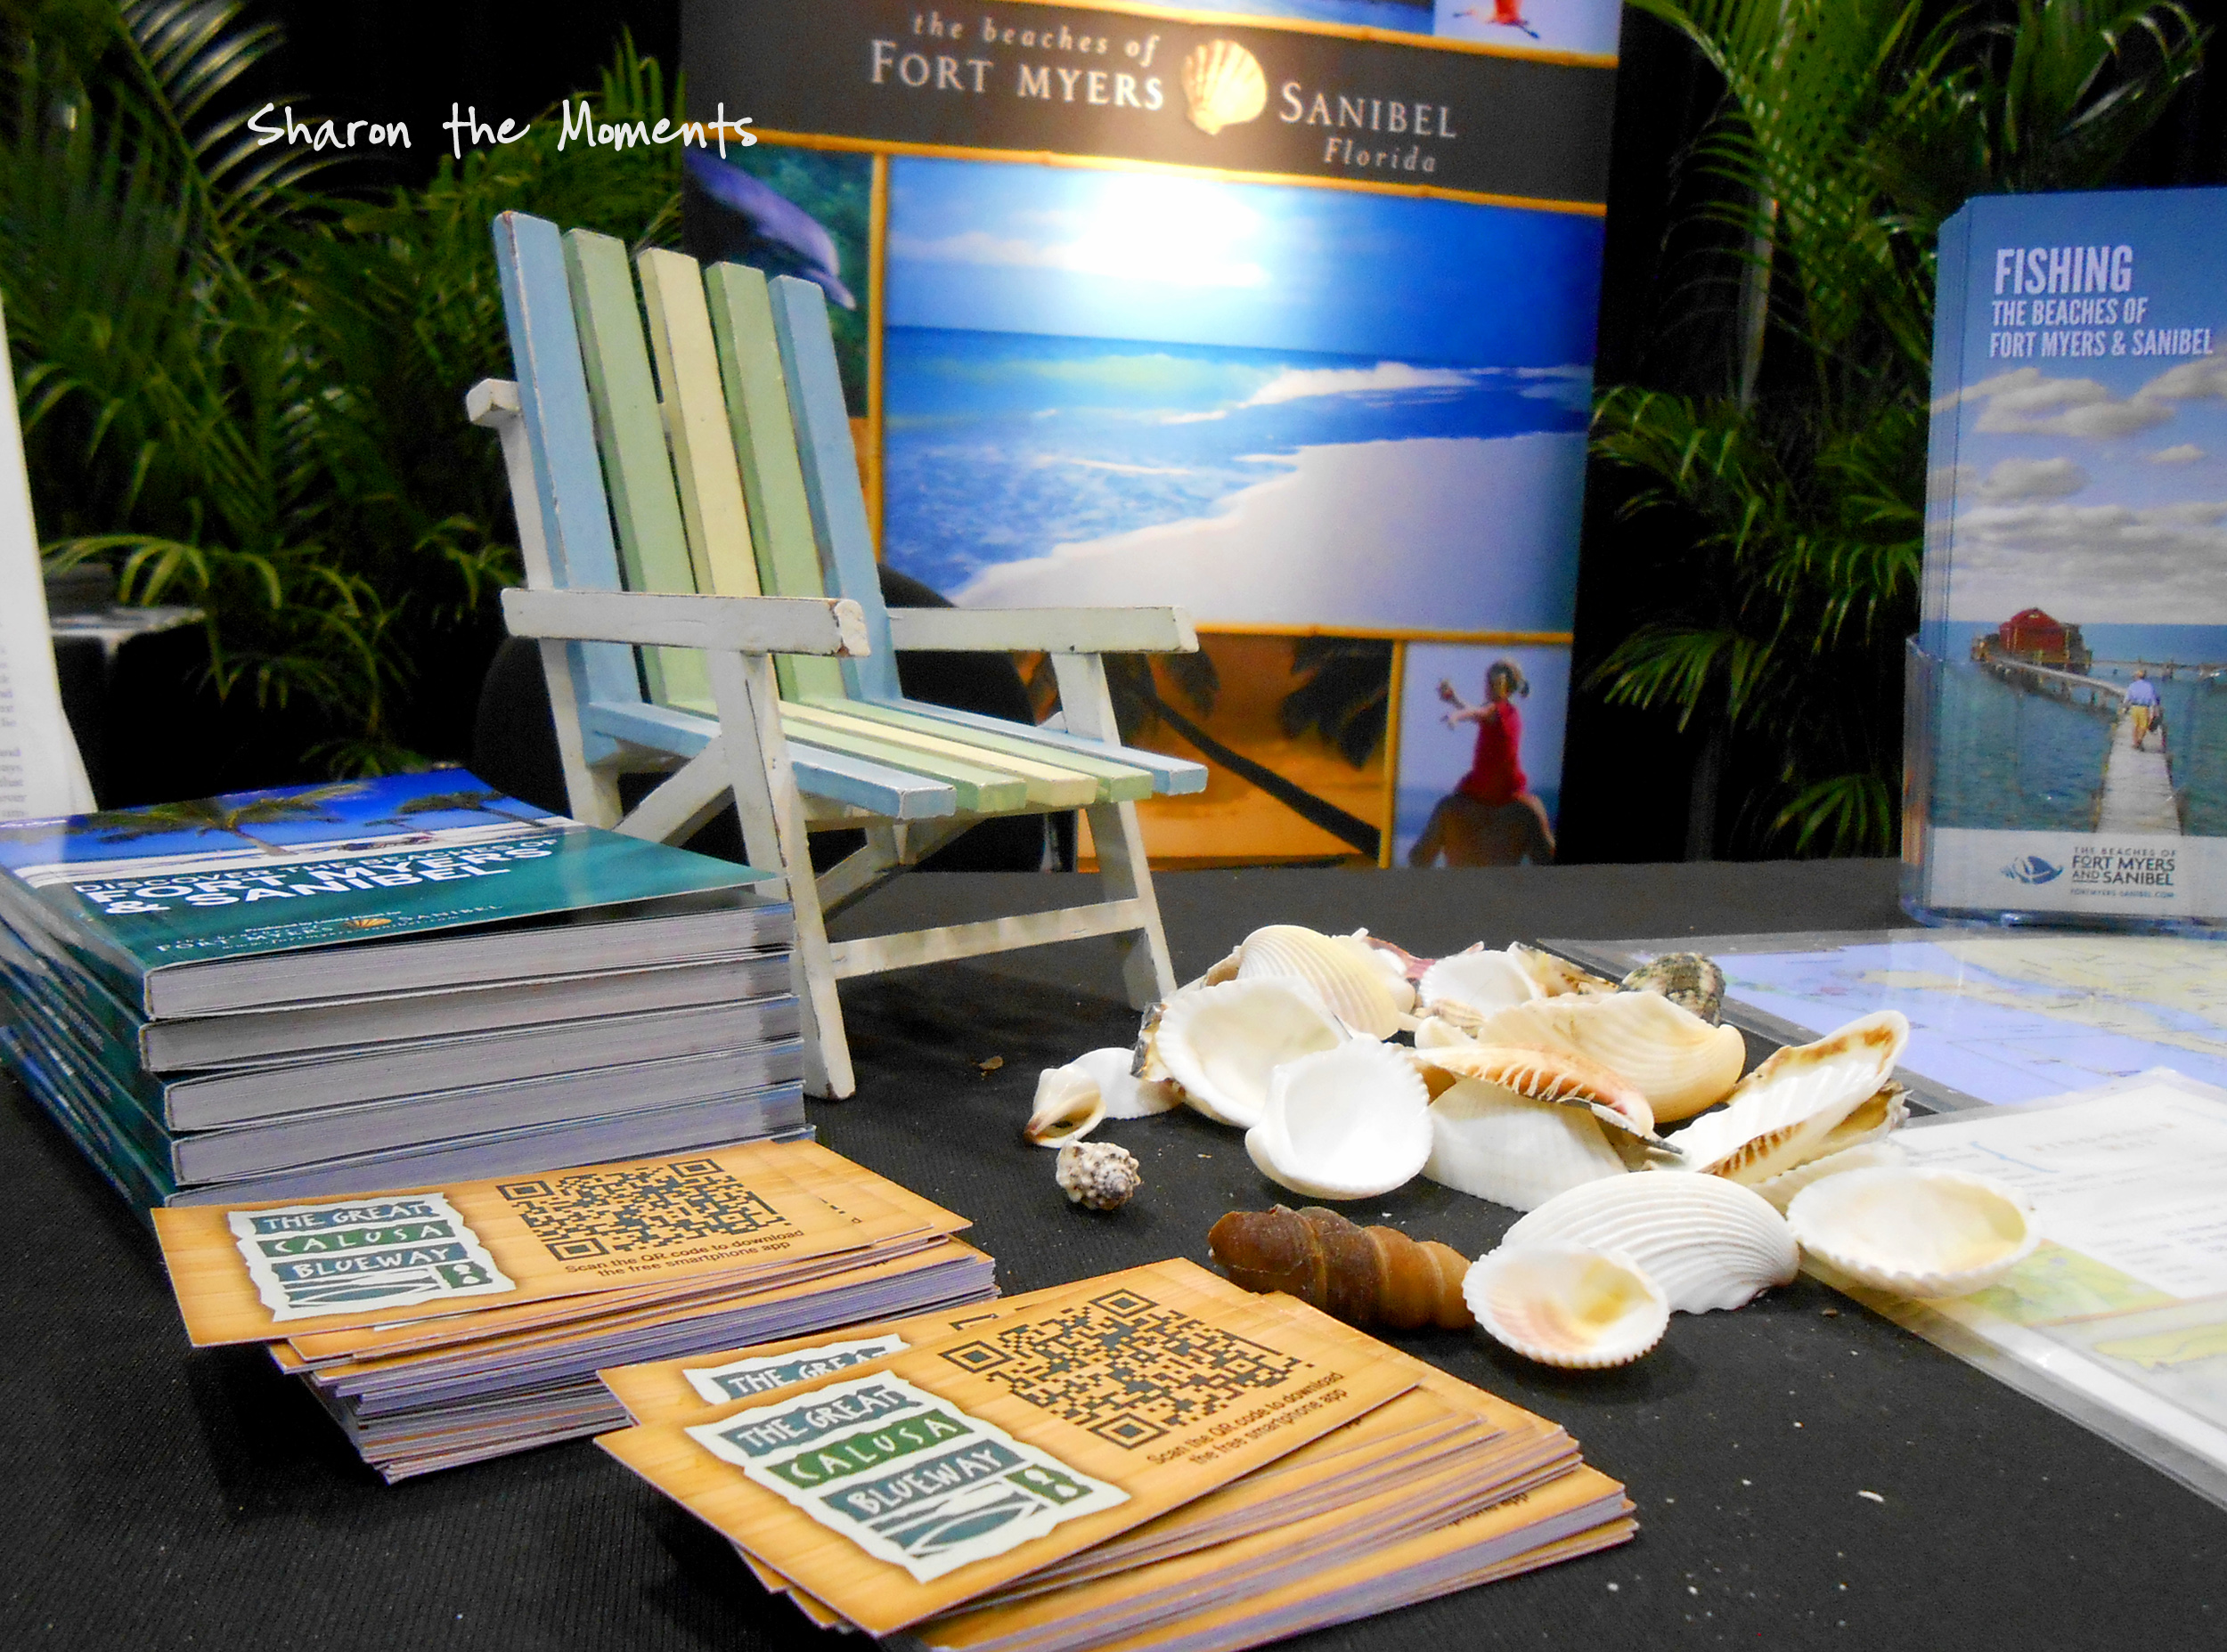 The AAA Vacation & Travel Expo Fort Myers & Sanibel|Sharon the Moments blog